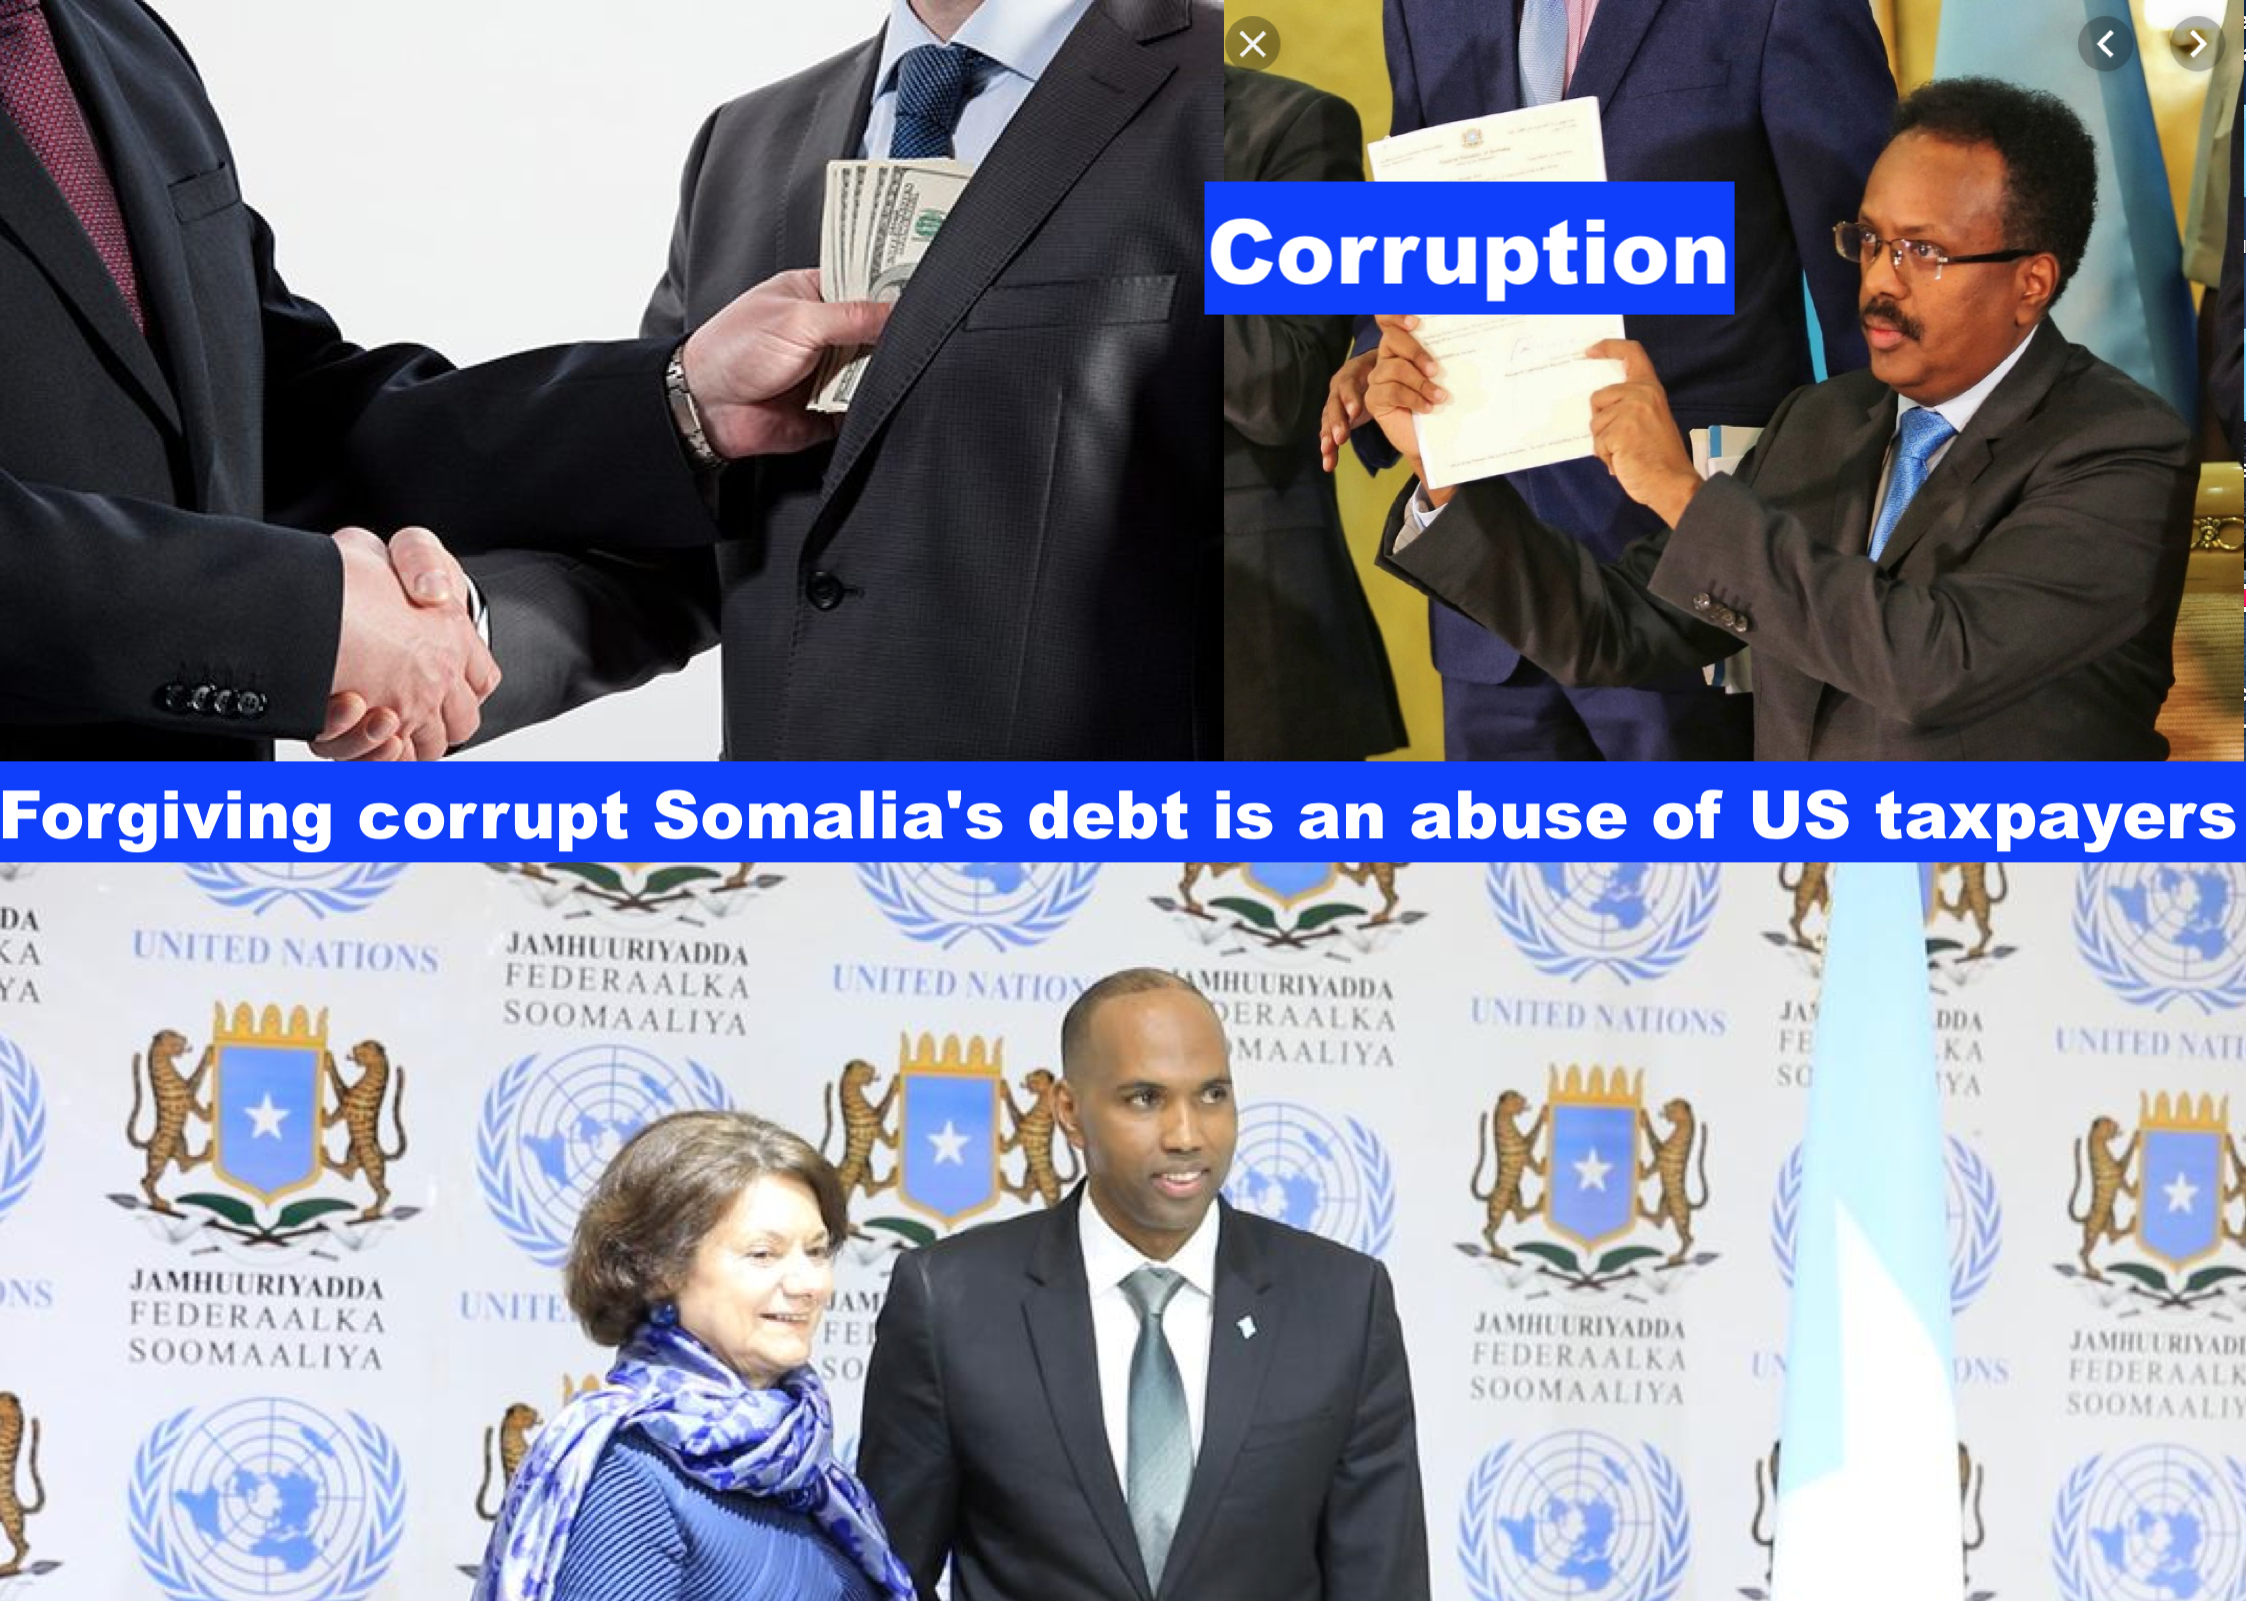 Forgiving corrupt Somalia's debt is an abuse of US taxpayers